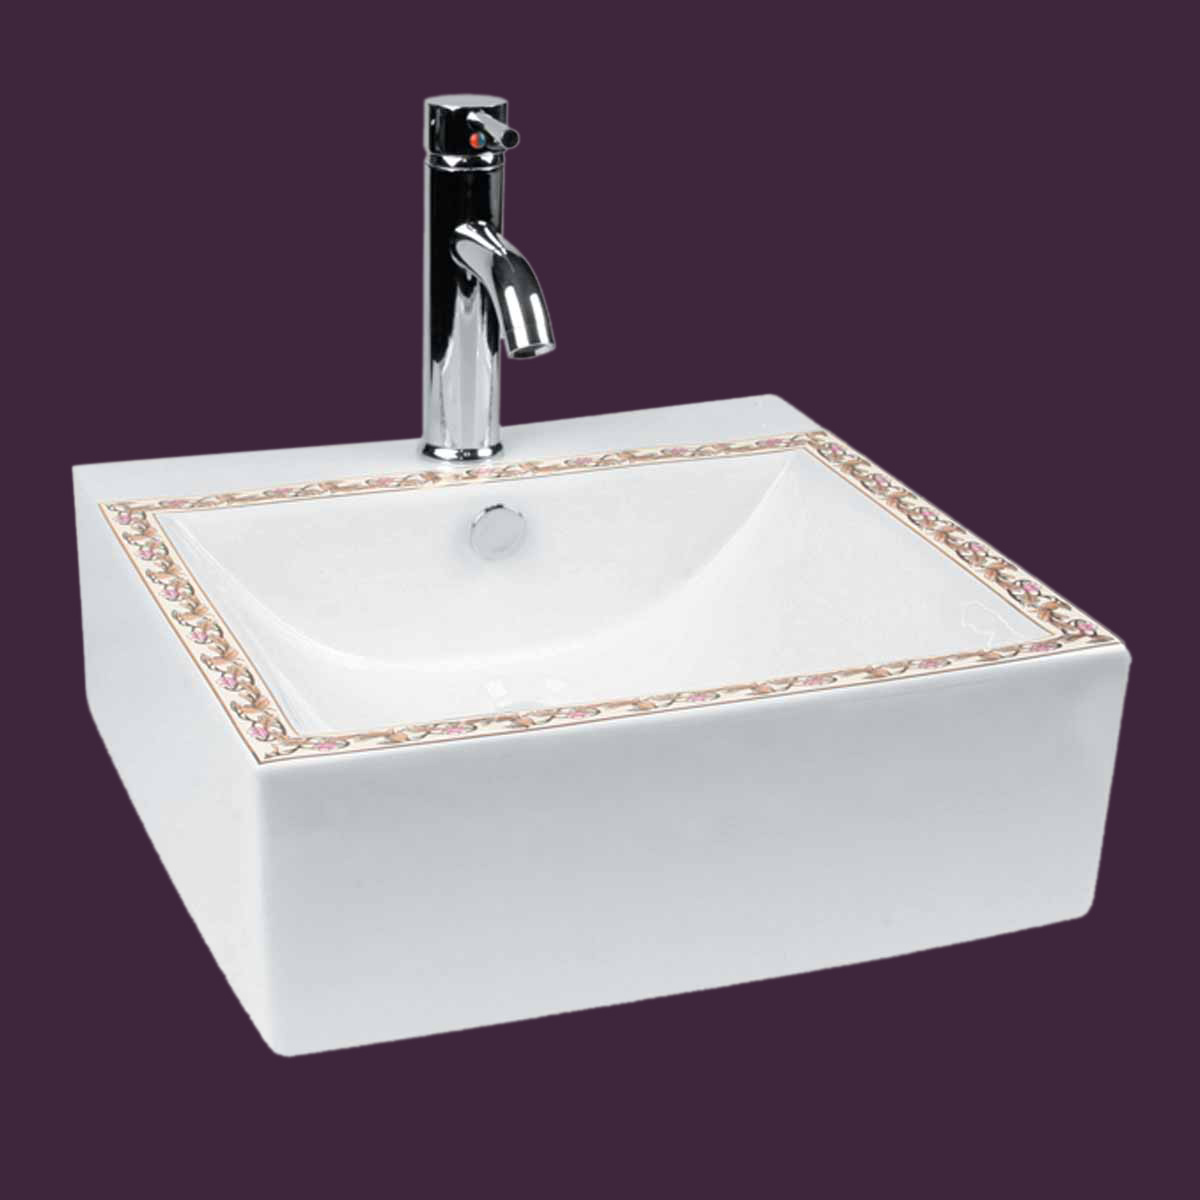 Bathroom Vessel Square Sink White China Painted Faucet Hole